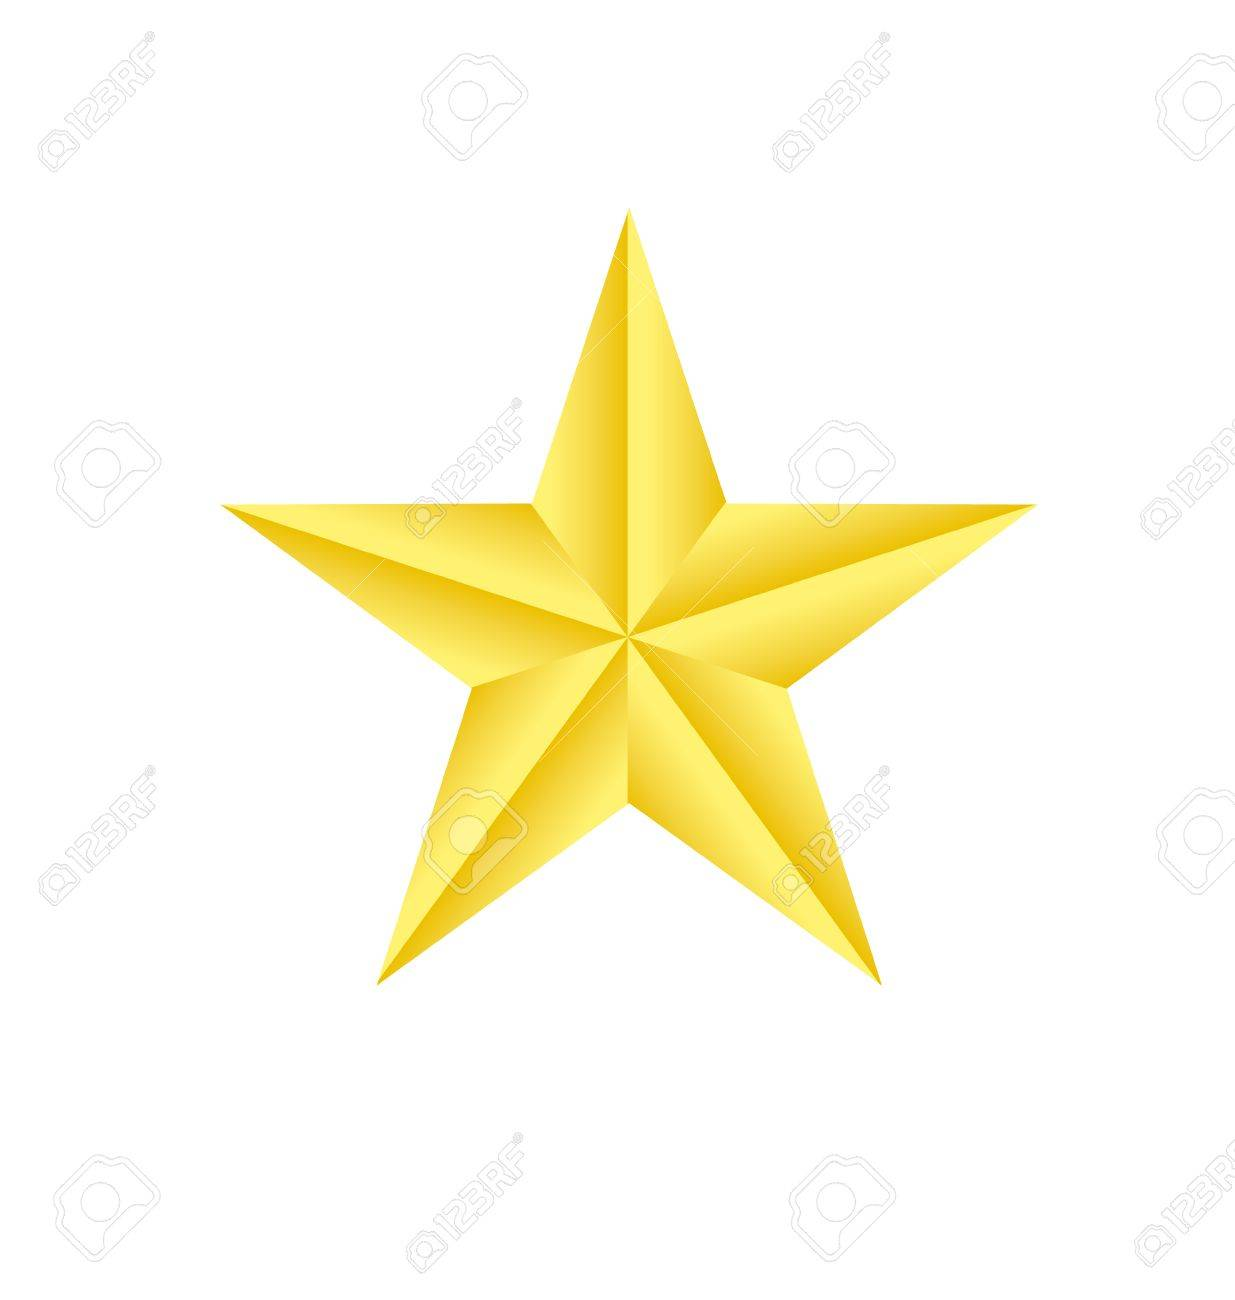 https://previews.123rf.com/images/ggalyna/ggalyna1707/ggalyna170701002/81598889-gold-star-icon-vector-eps10-yellow-stars-pictogram-art-star-symbol-illustration-.jpg